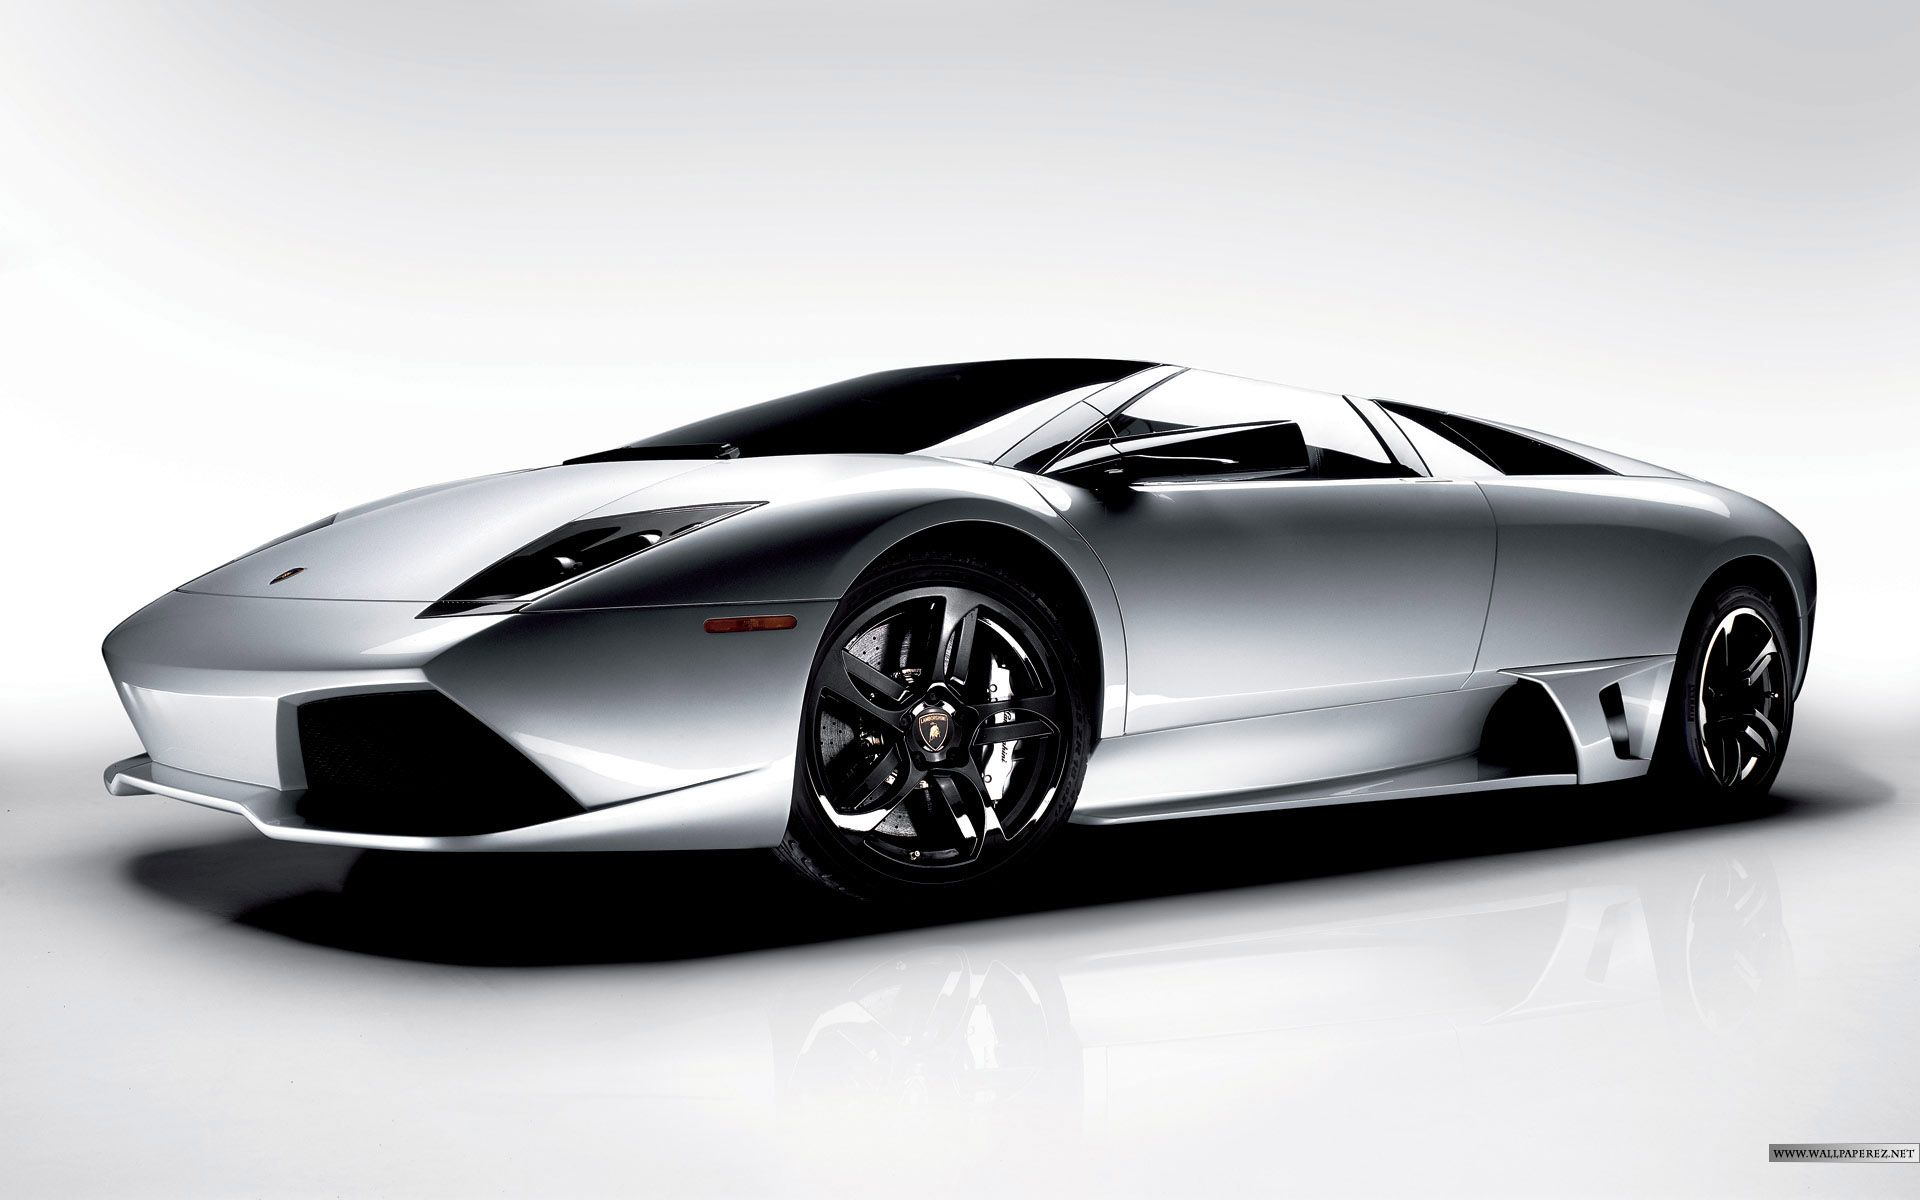 Wallpapers For Cool Lamborghini Wallpapers 1920x1200